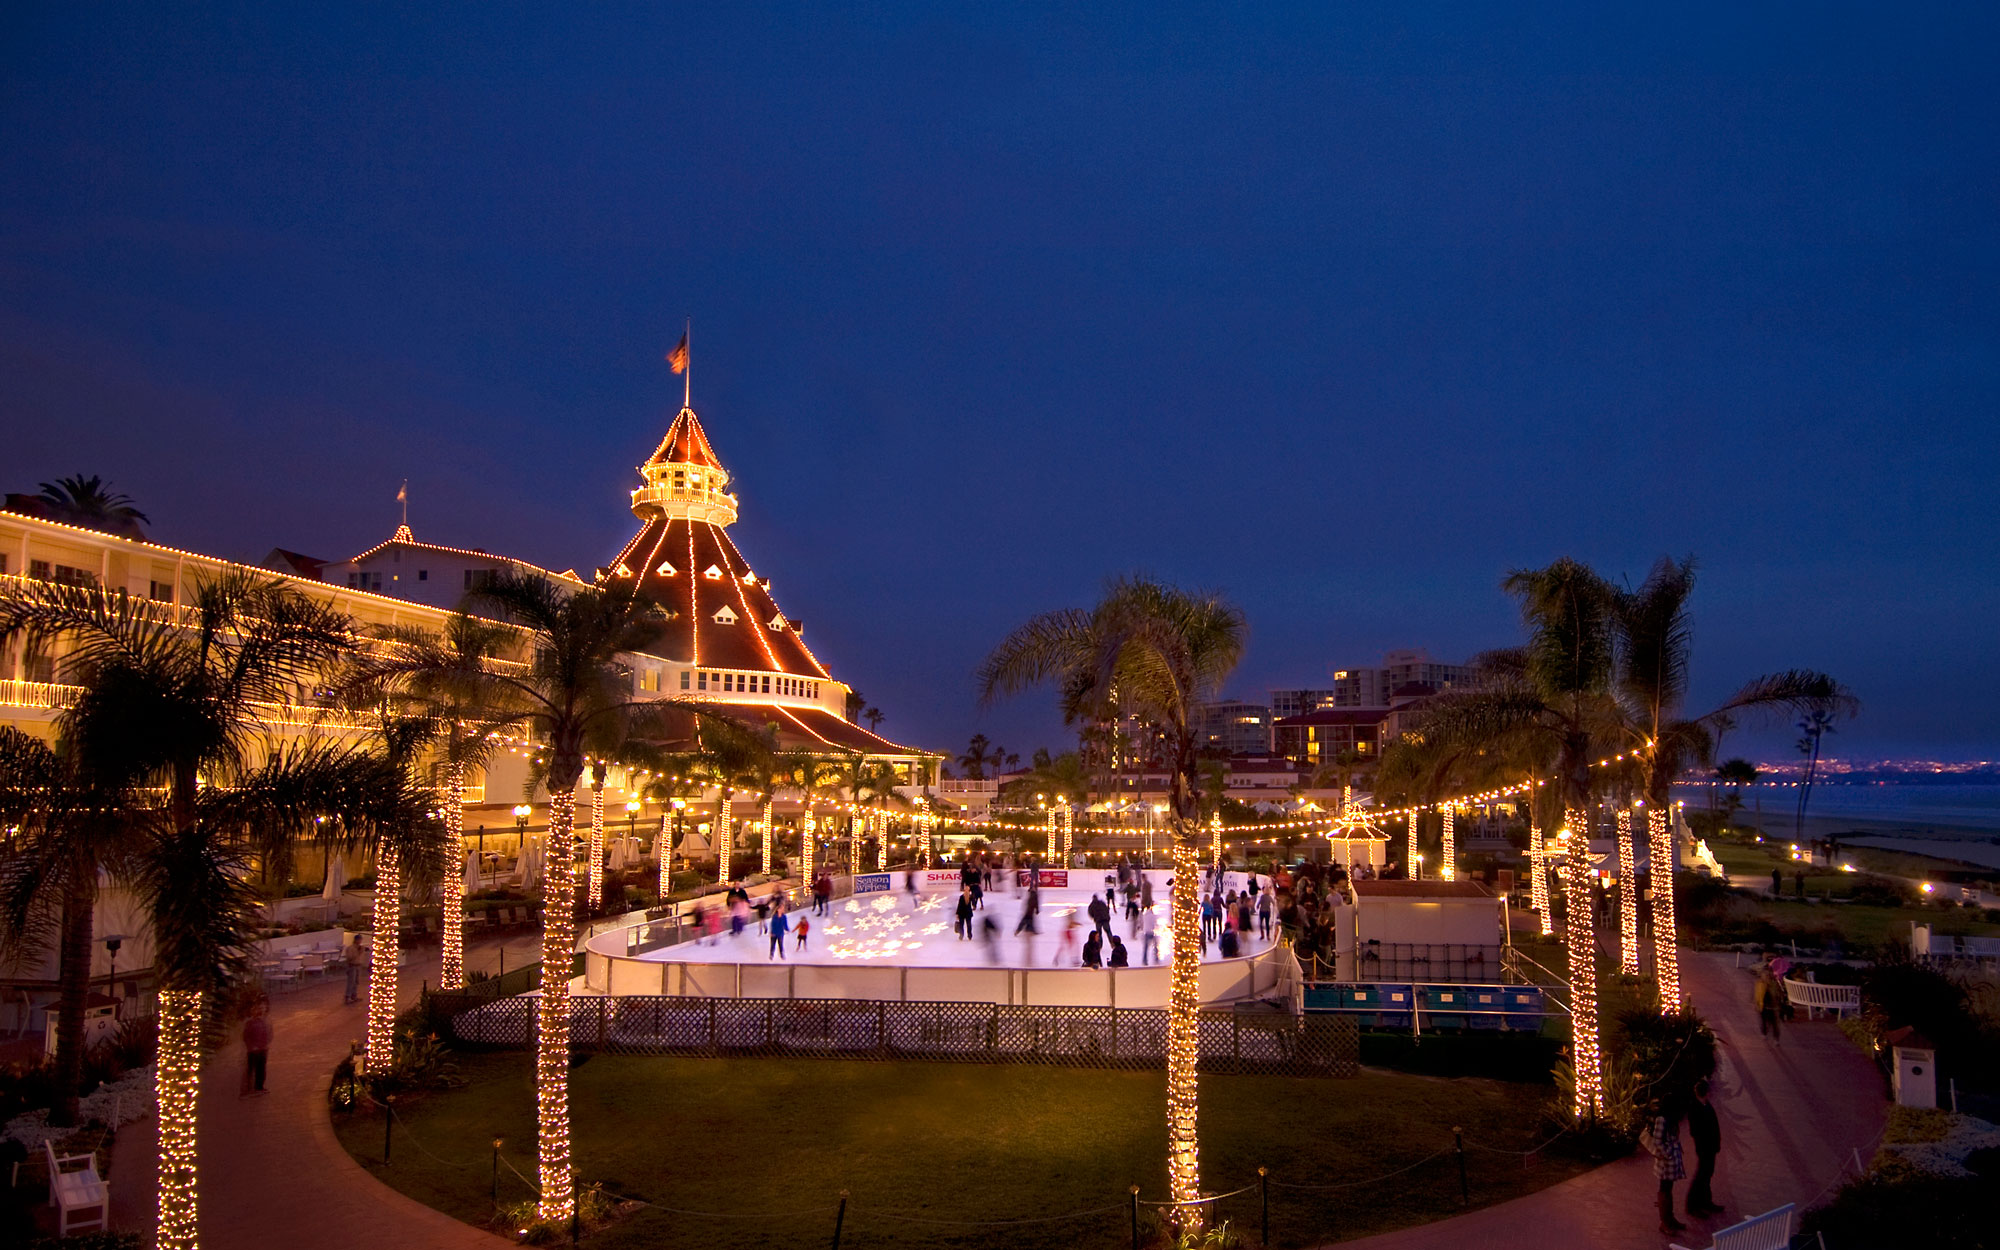 America's Best Hotels for Christmas, Hotel del Coronado, CA